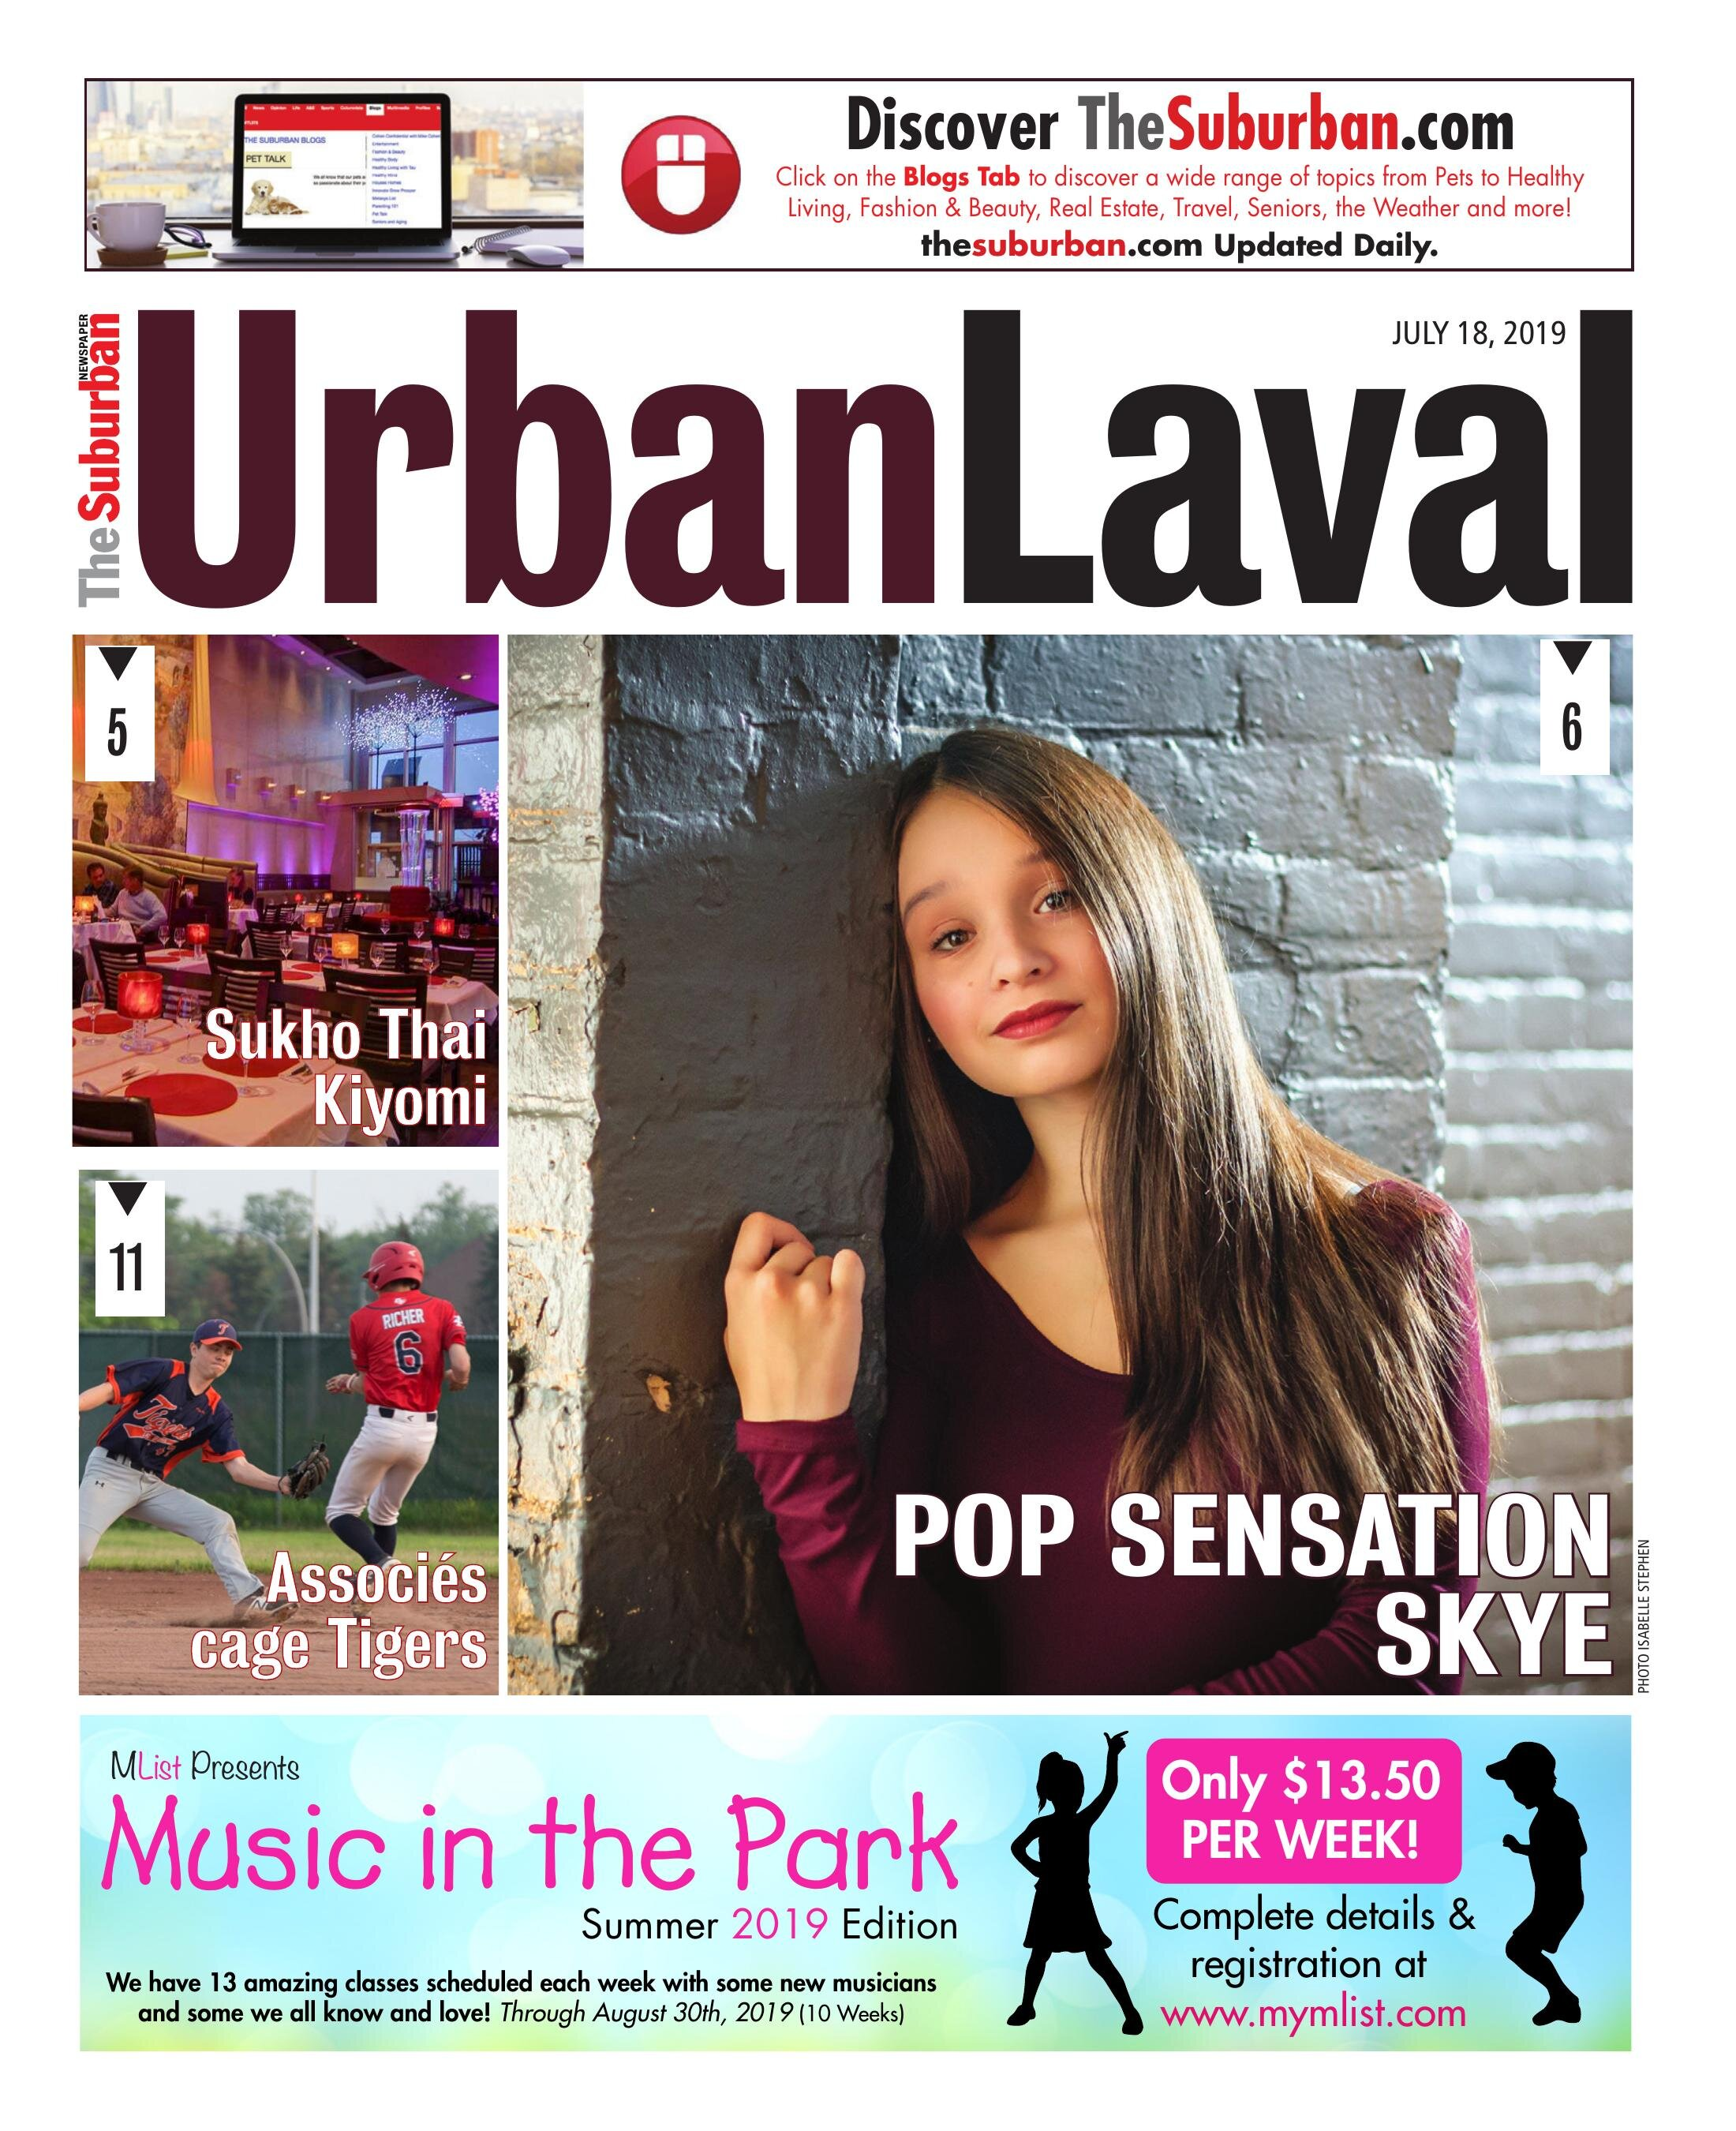 THE SUBURBAN ARTICLE//NEWSPAPER: http://www.thesuburban.com/news/city_news/ianiciello-takes-the-  scene/article_4453c11b-0ee2-5d22-9796-a1fd3fbe3079.html